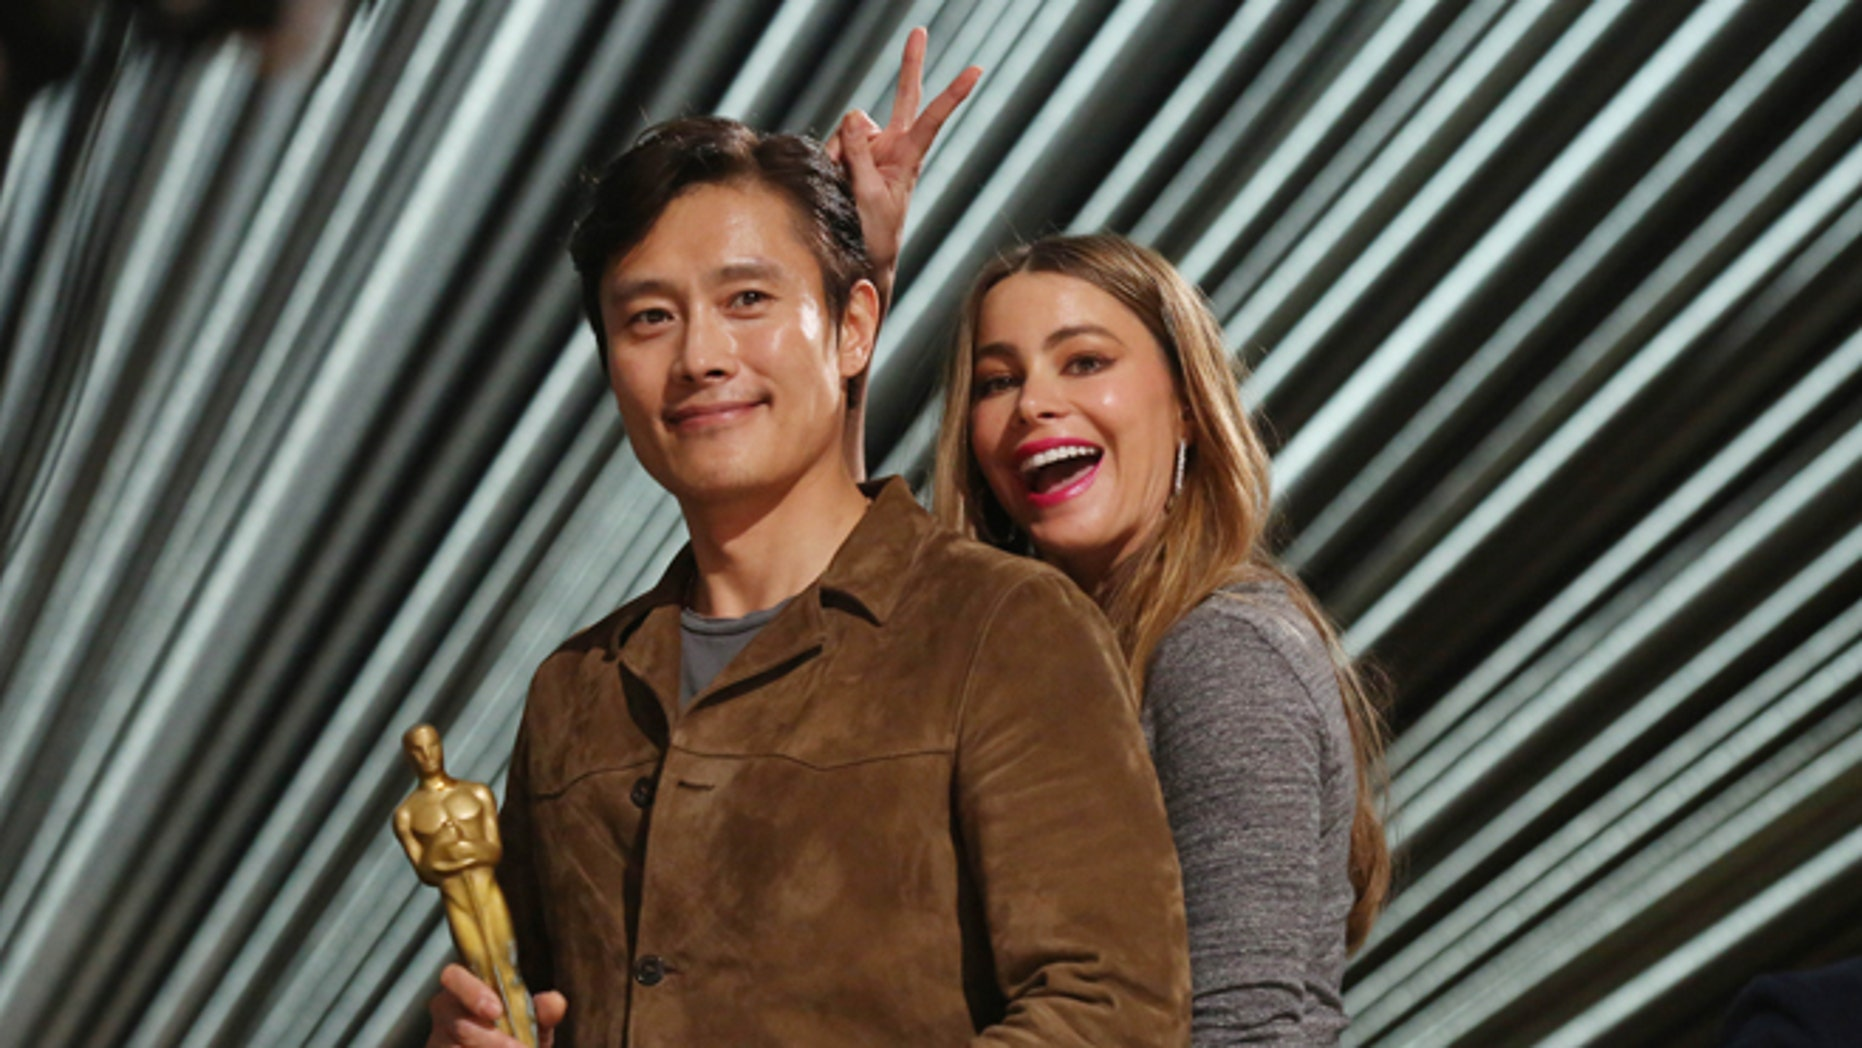 February 27, 2016. Sofia Vergara, right, and Byung-hun Lee appear during rehearsals for the 88th Academy Awards in Los Angeles.